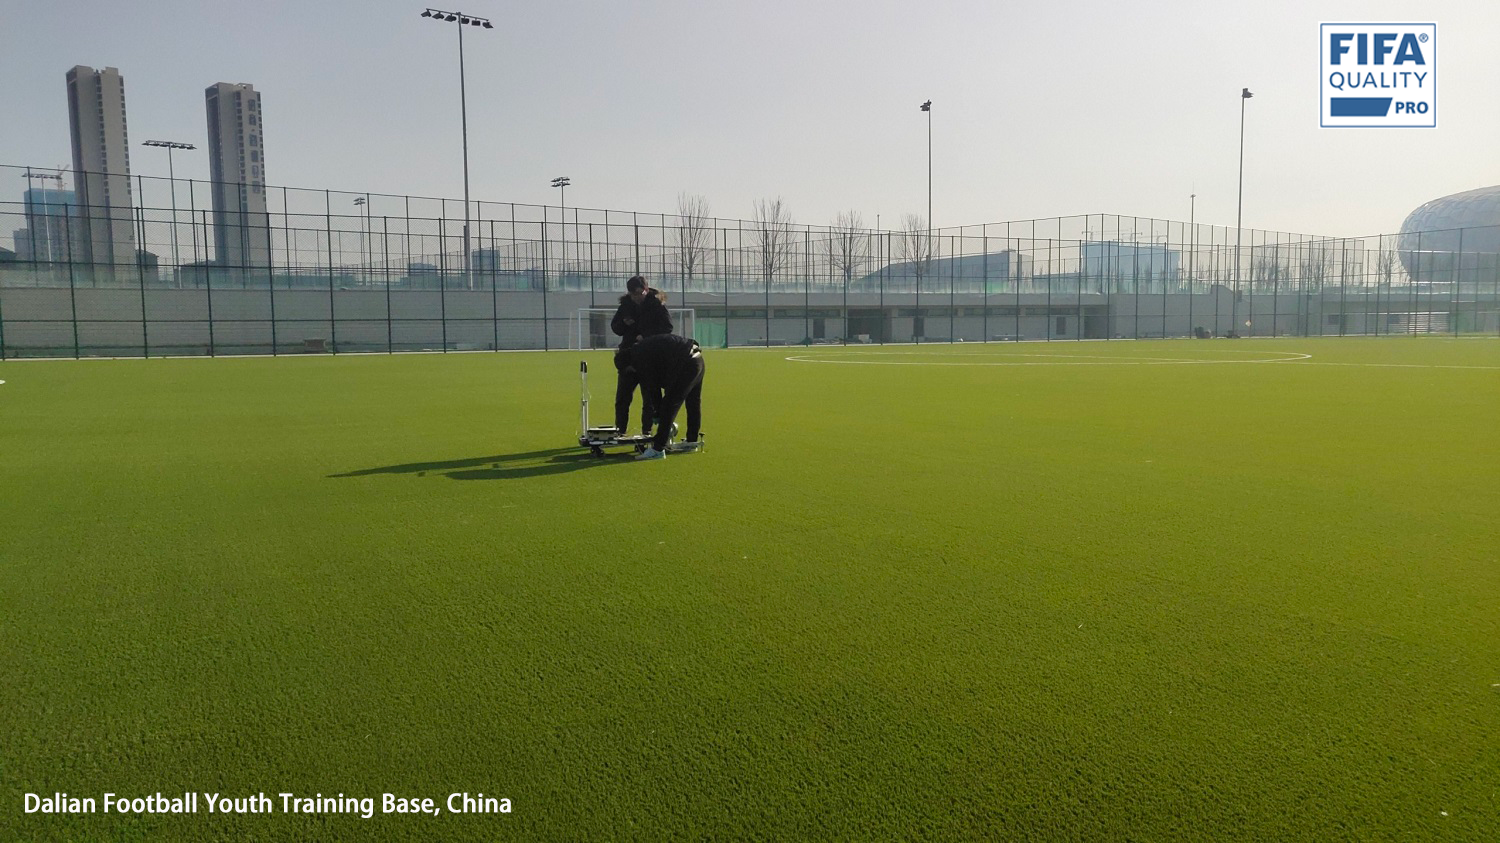 CCGrass supplies pitches for Dalian football youth training base